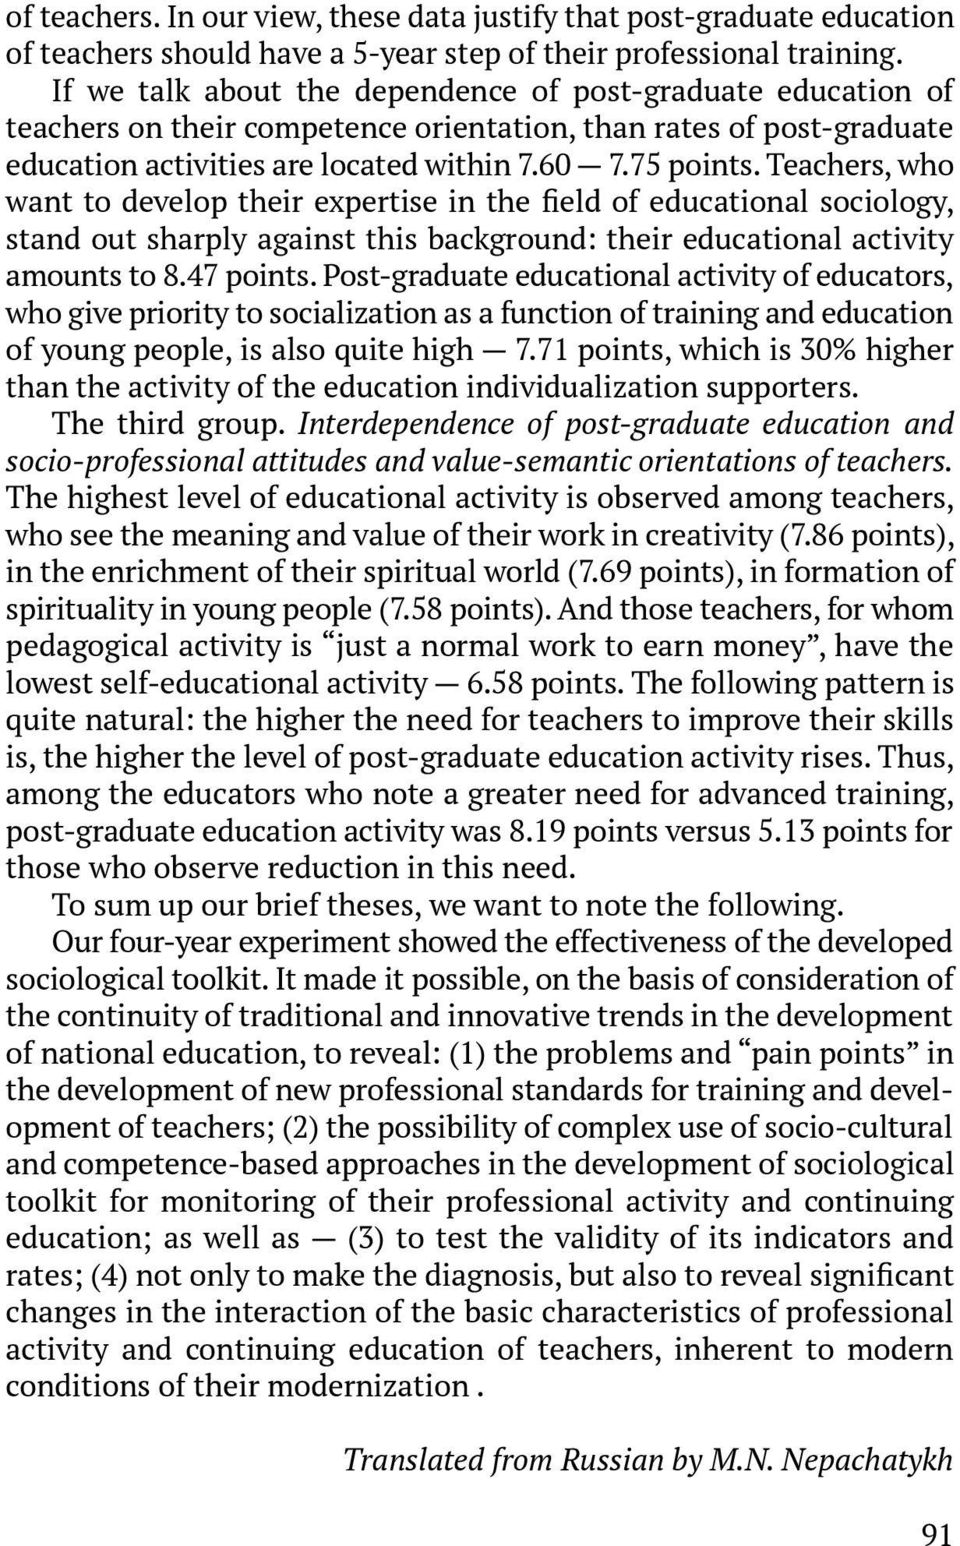 Teachers, who want to develop their expertise in the field of educational sociology, stand out sharply against this background: their educational activity amounts to 8.47 points.